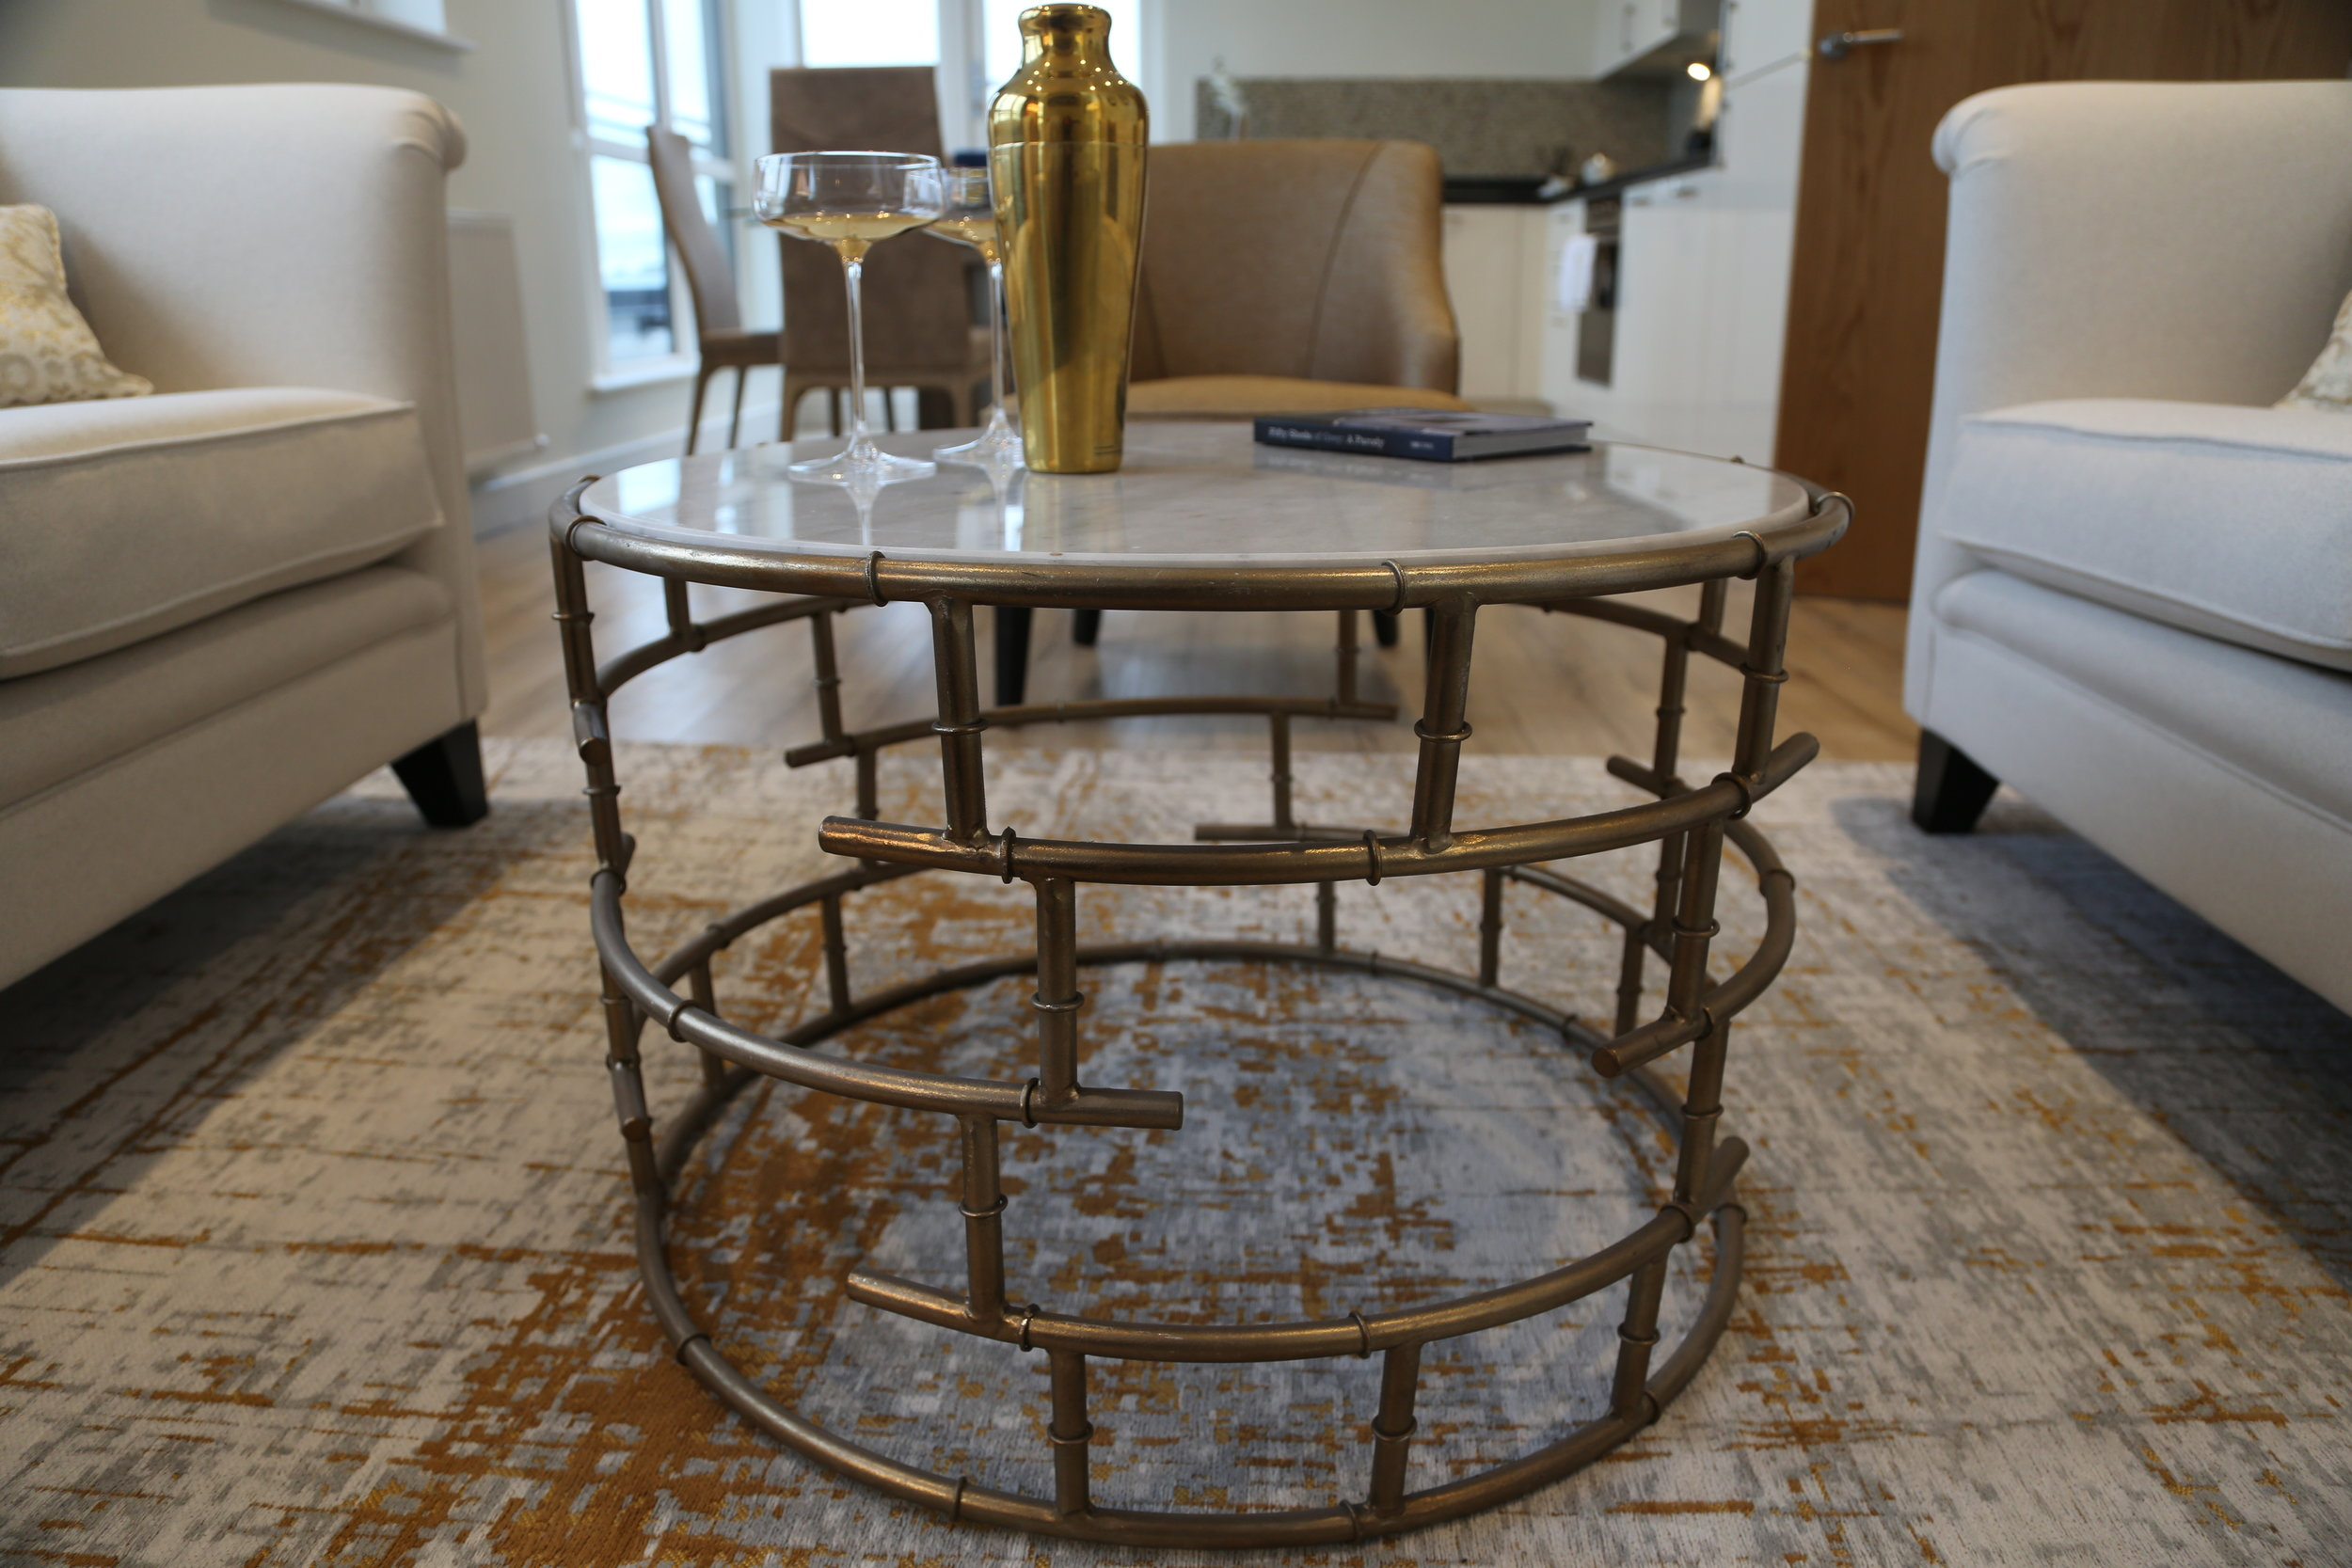 The coffee table is pratical but also gives the feeling of space in the room